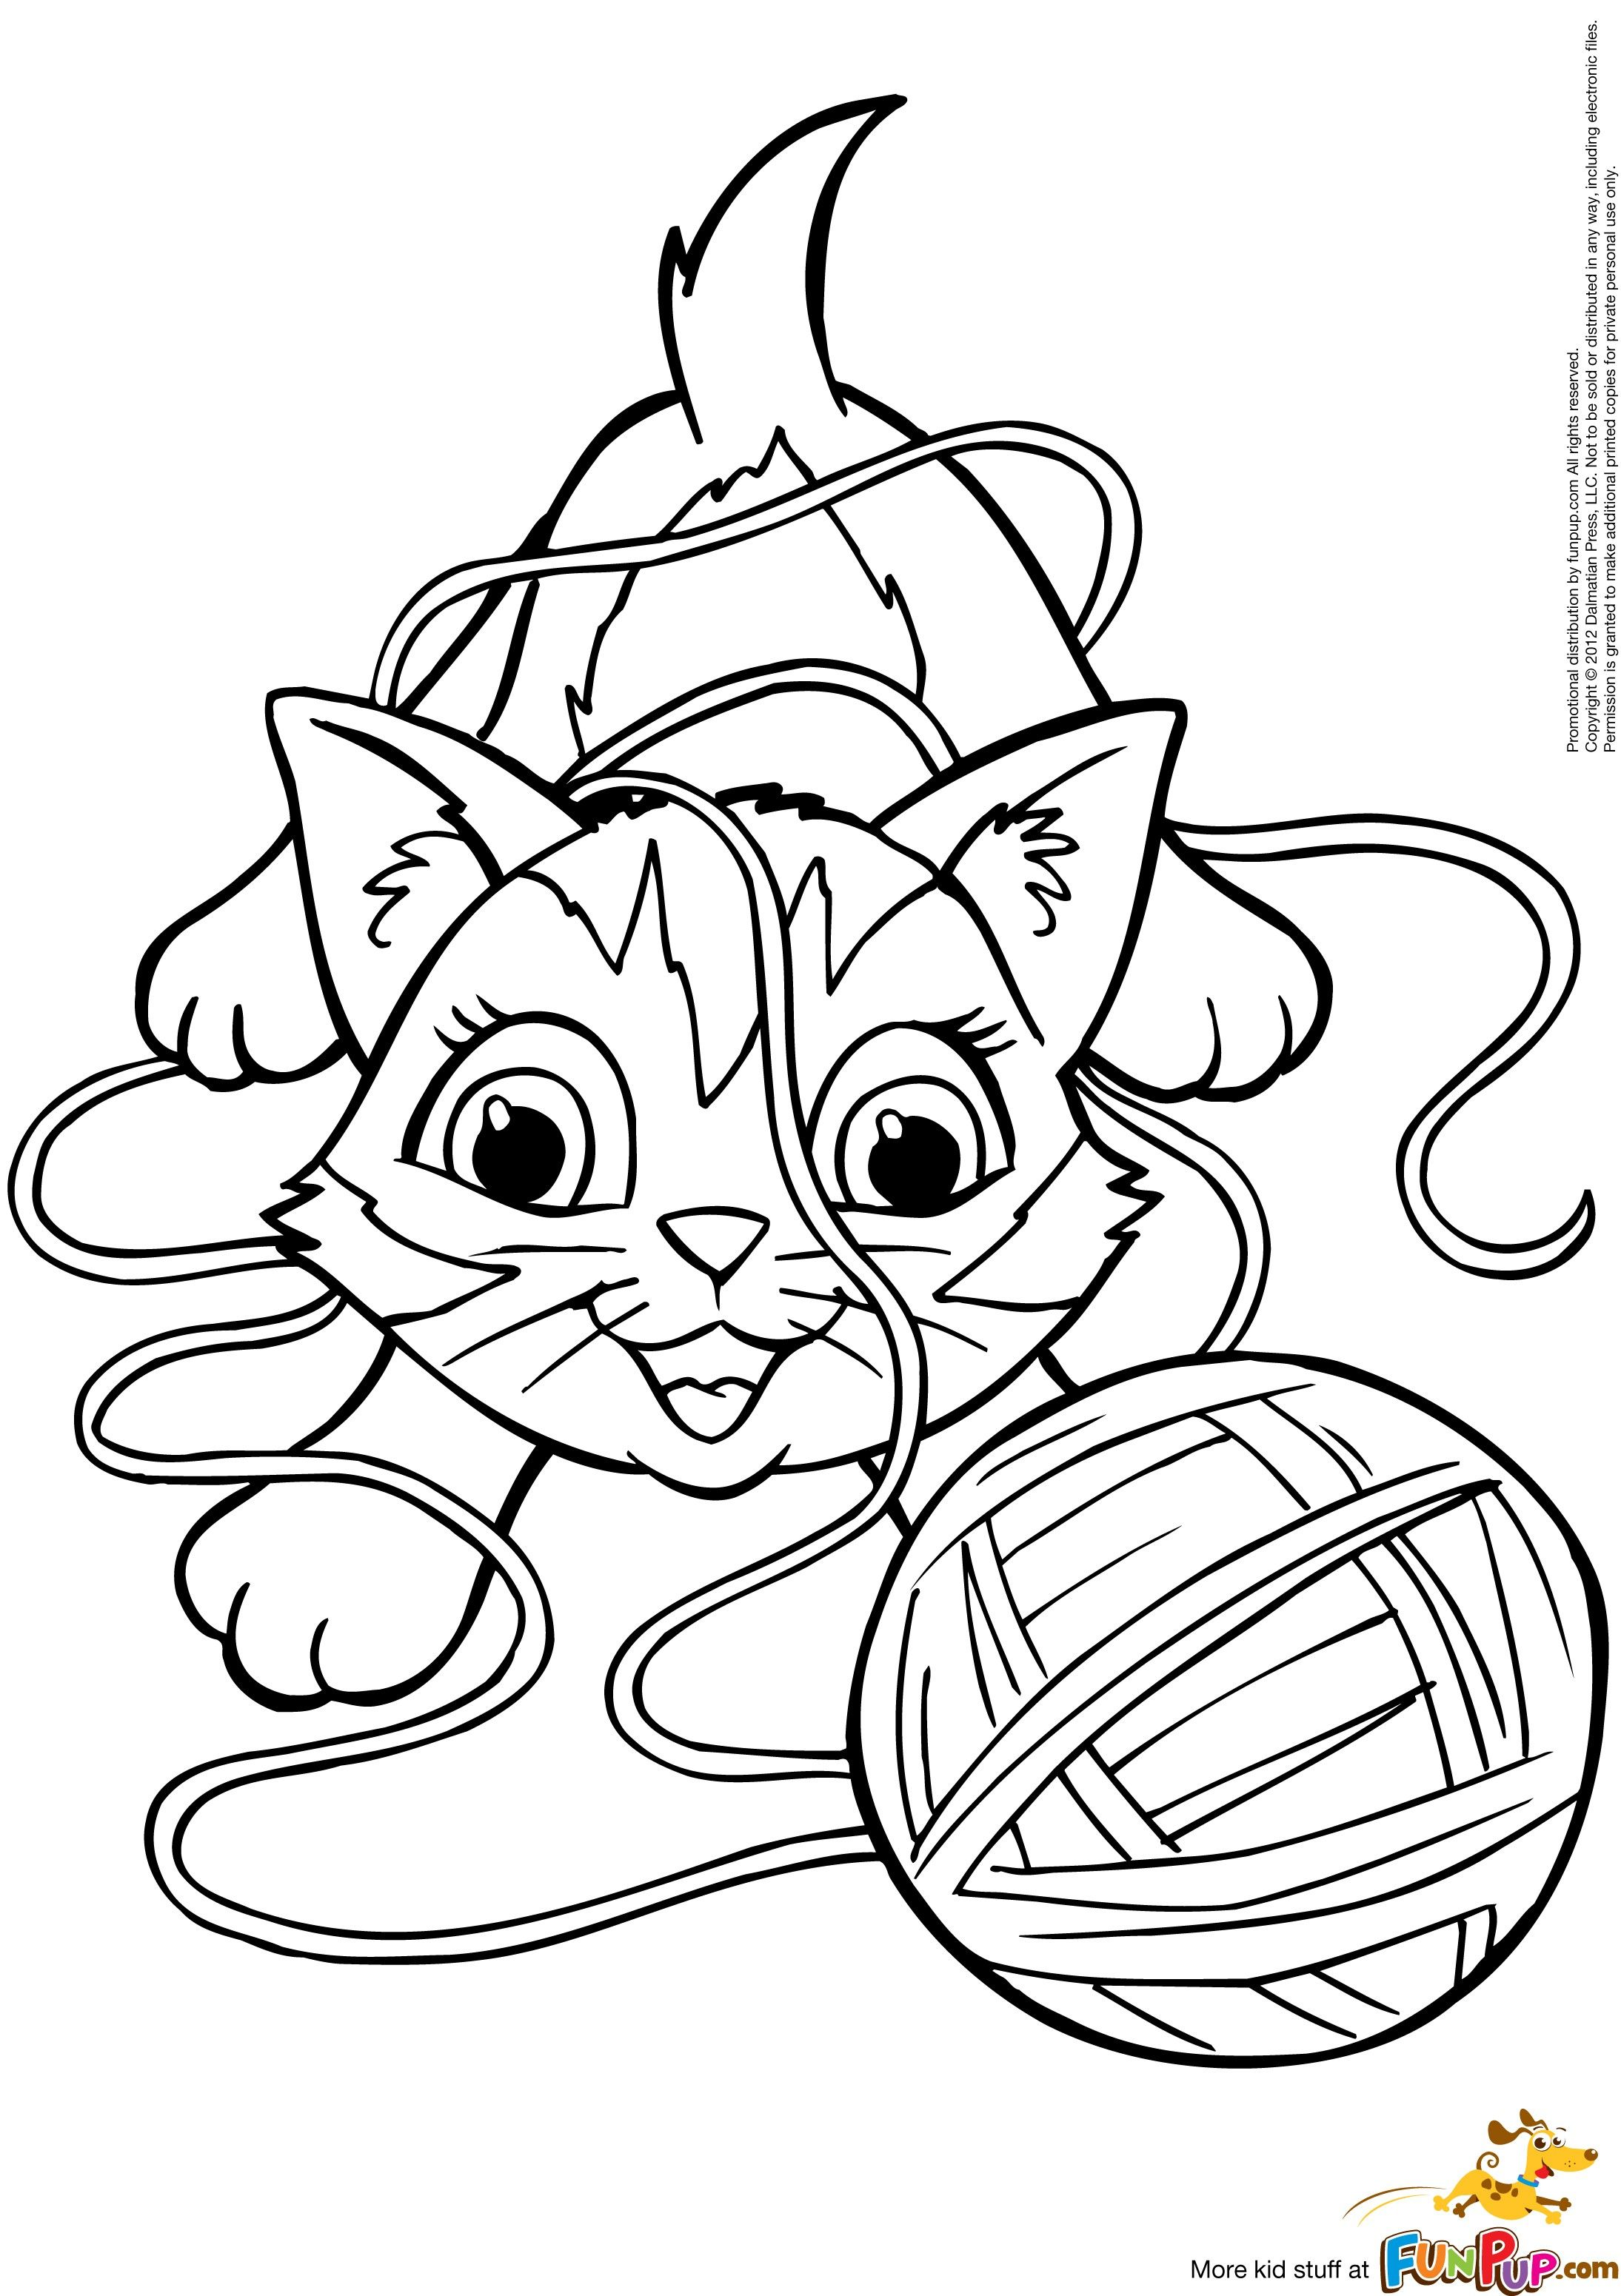 pictures of cats and kittens to color free printable cat coloring pages for kids pictures cats to color and kittens of